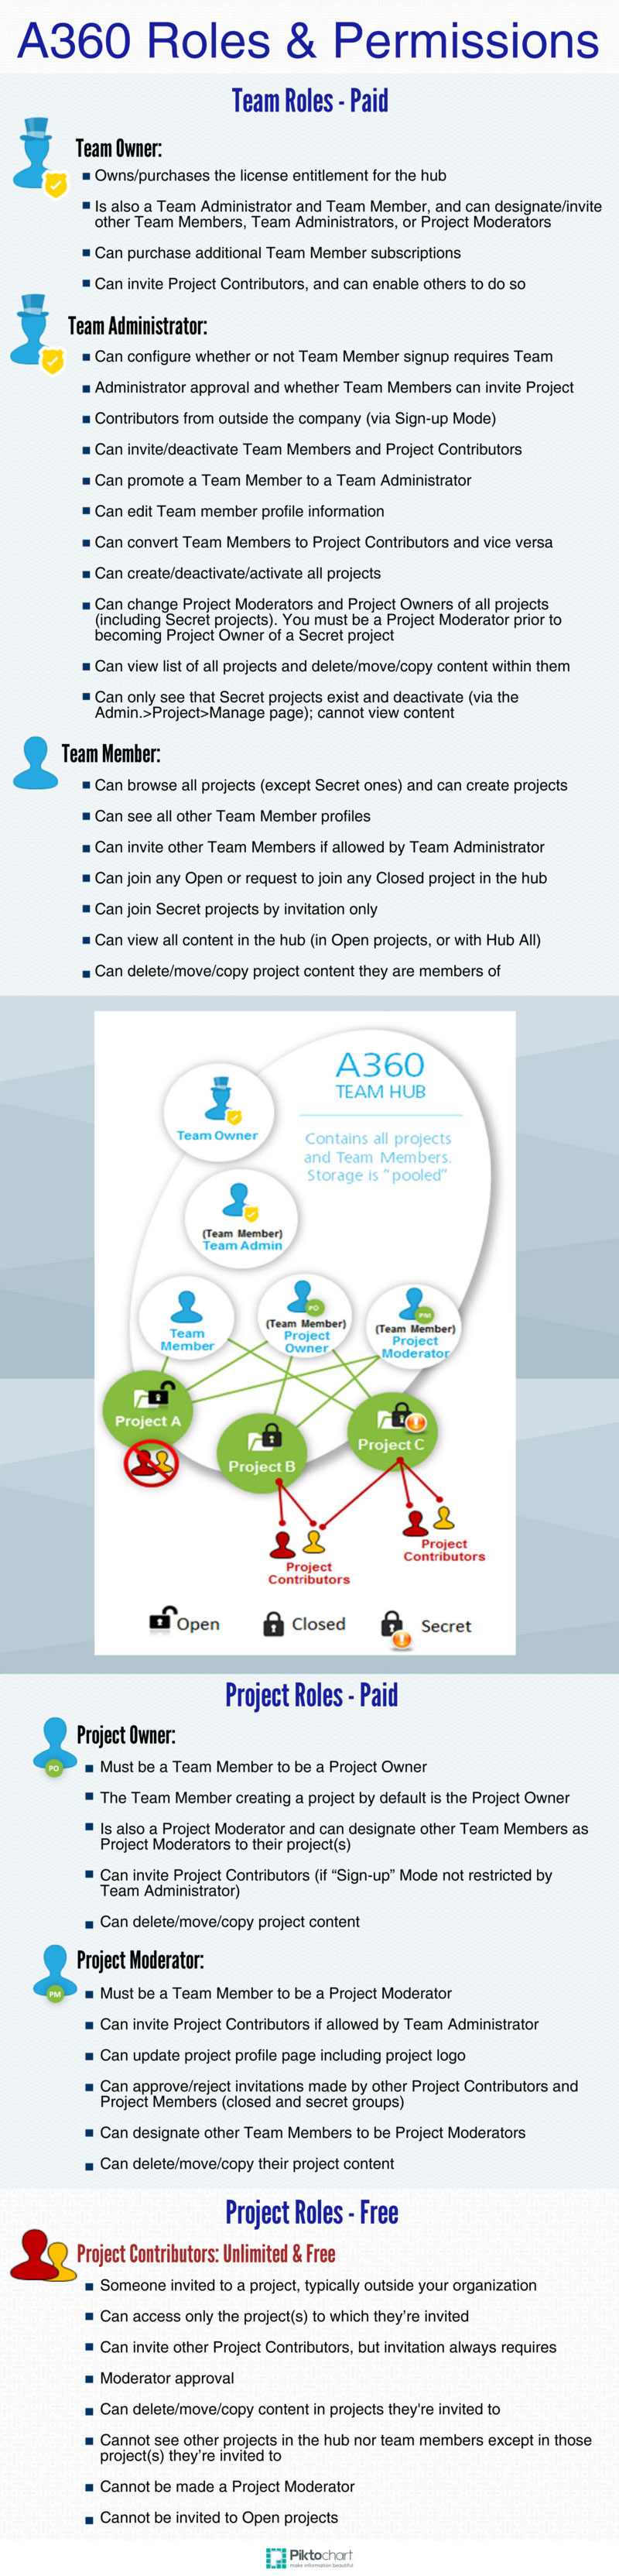 A360 Roles and Permissions